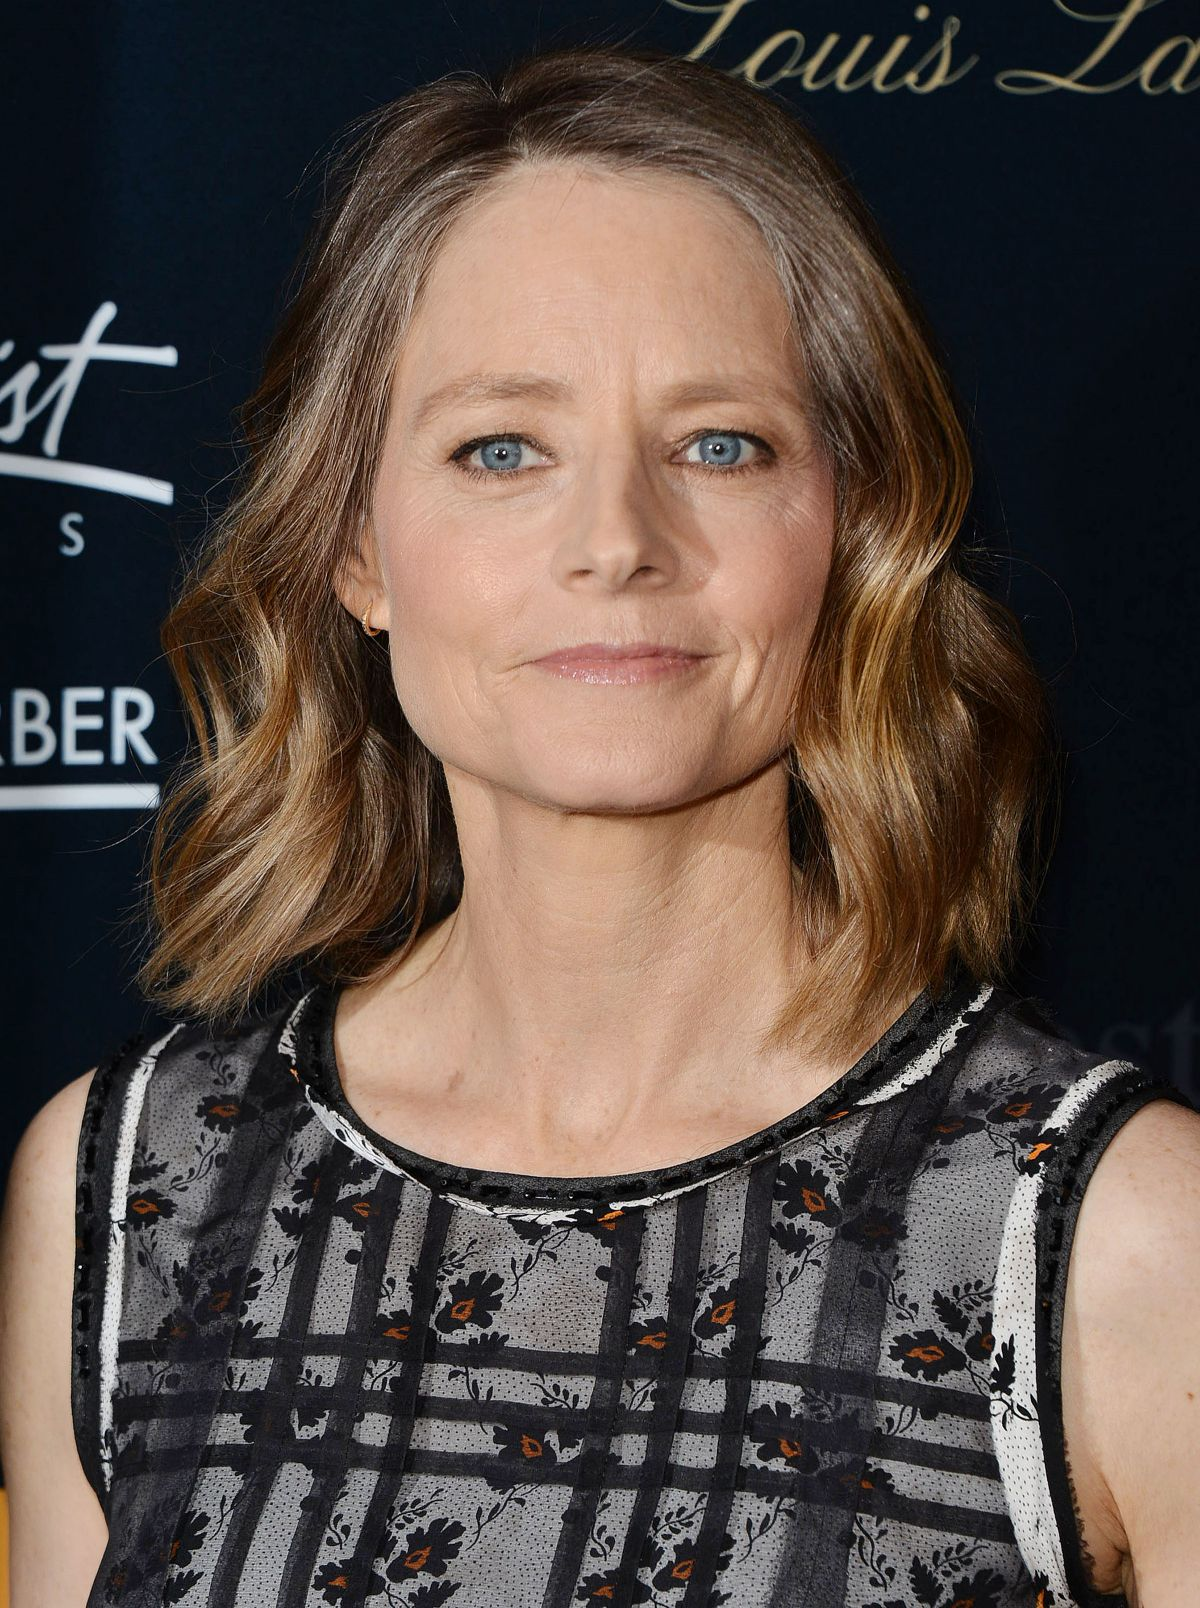 jodie foster - photo #13